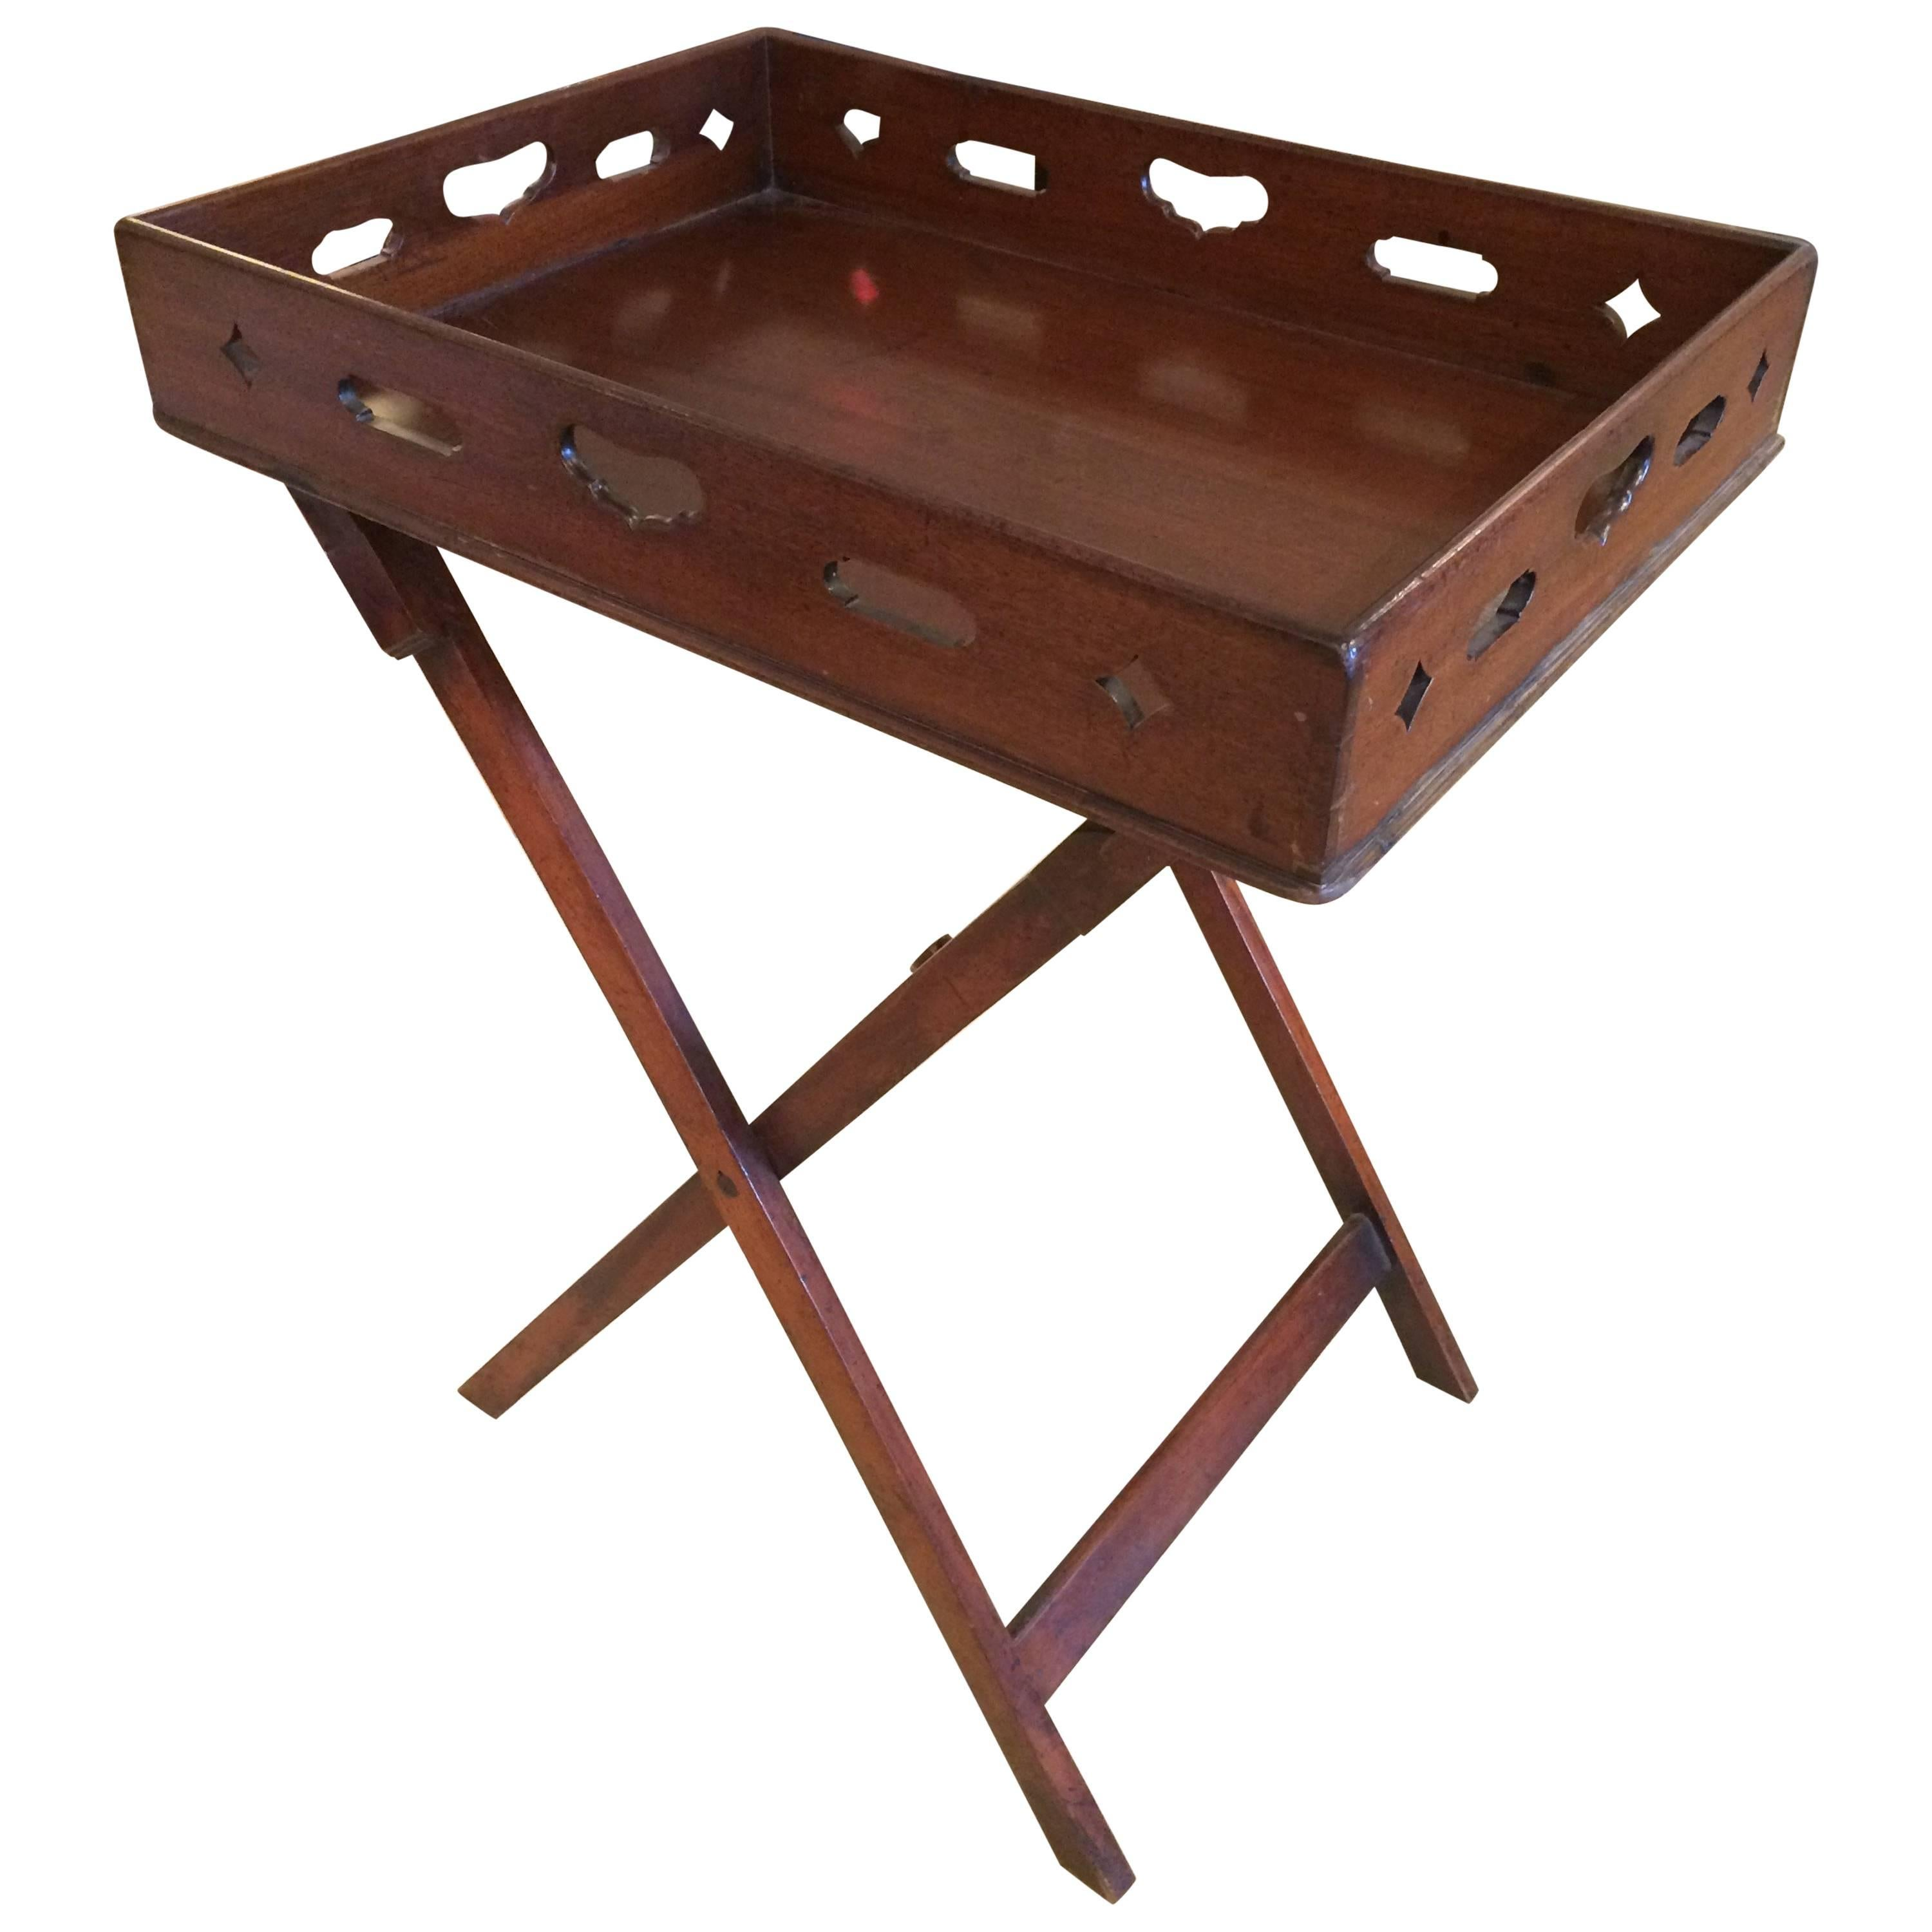 Handsome English Traditional Mahogany Butlers Tray Table or Bar